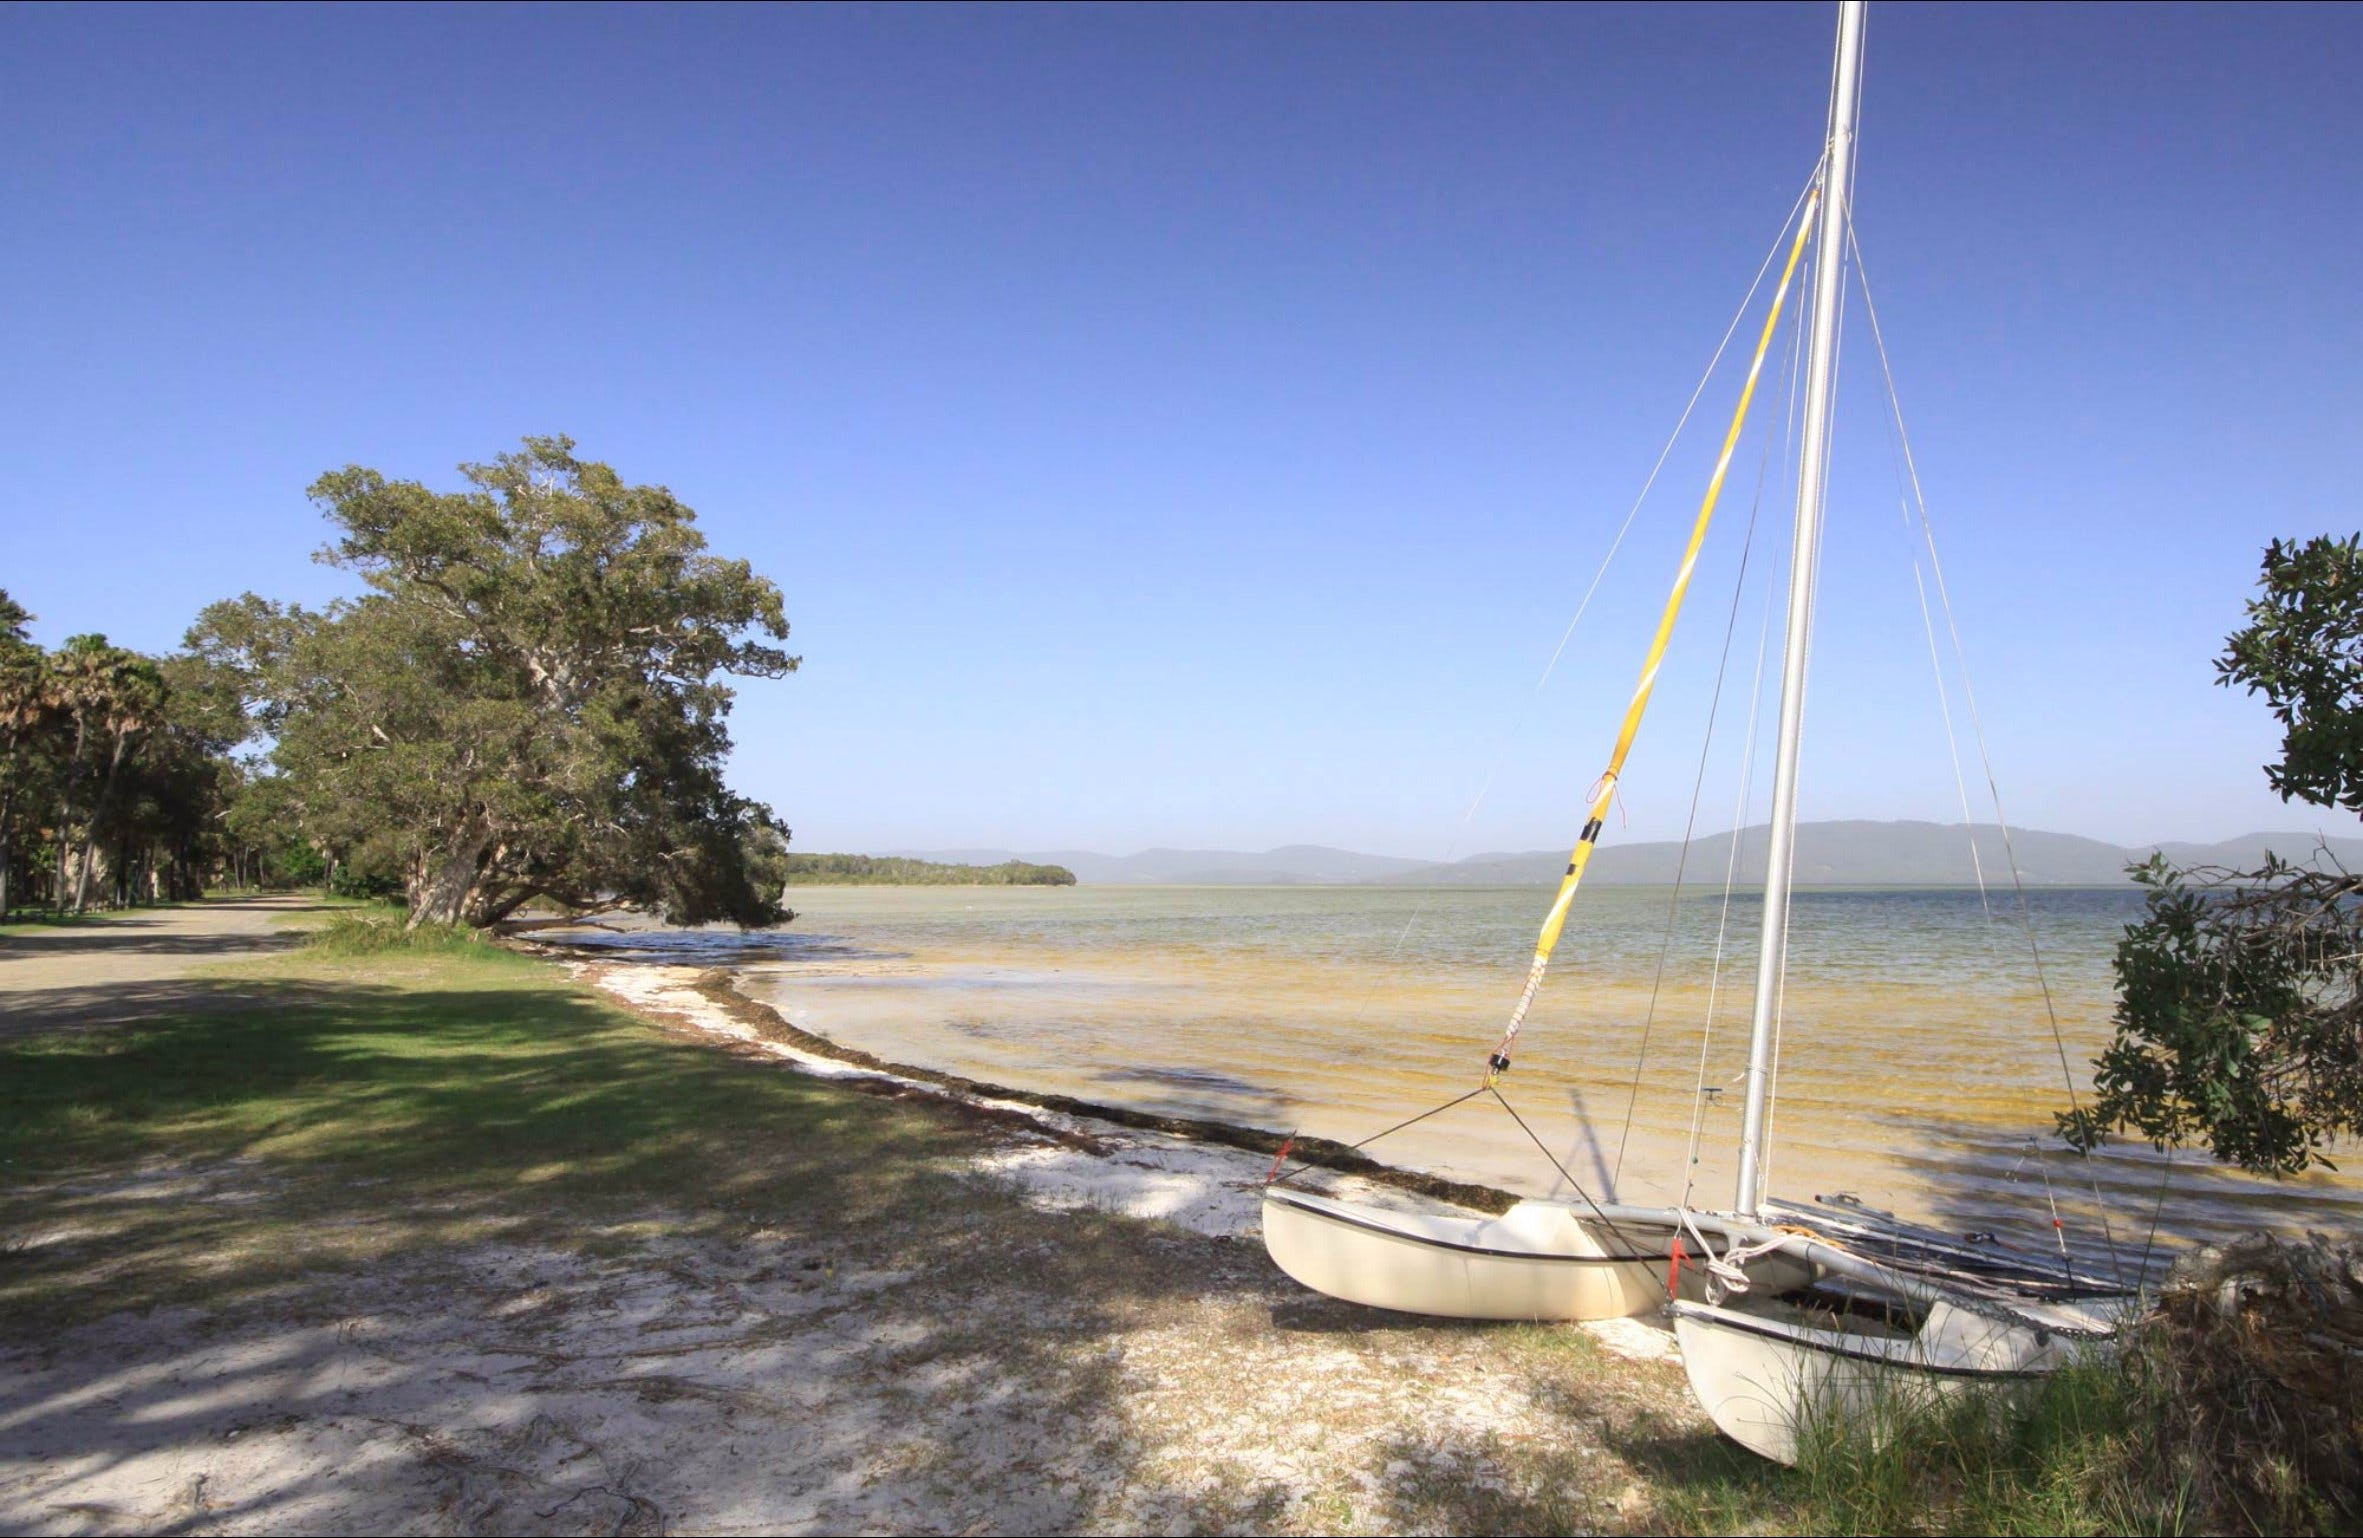 Sailing Club picnic area - Tourism TAS